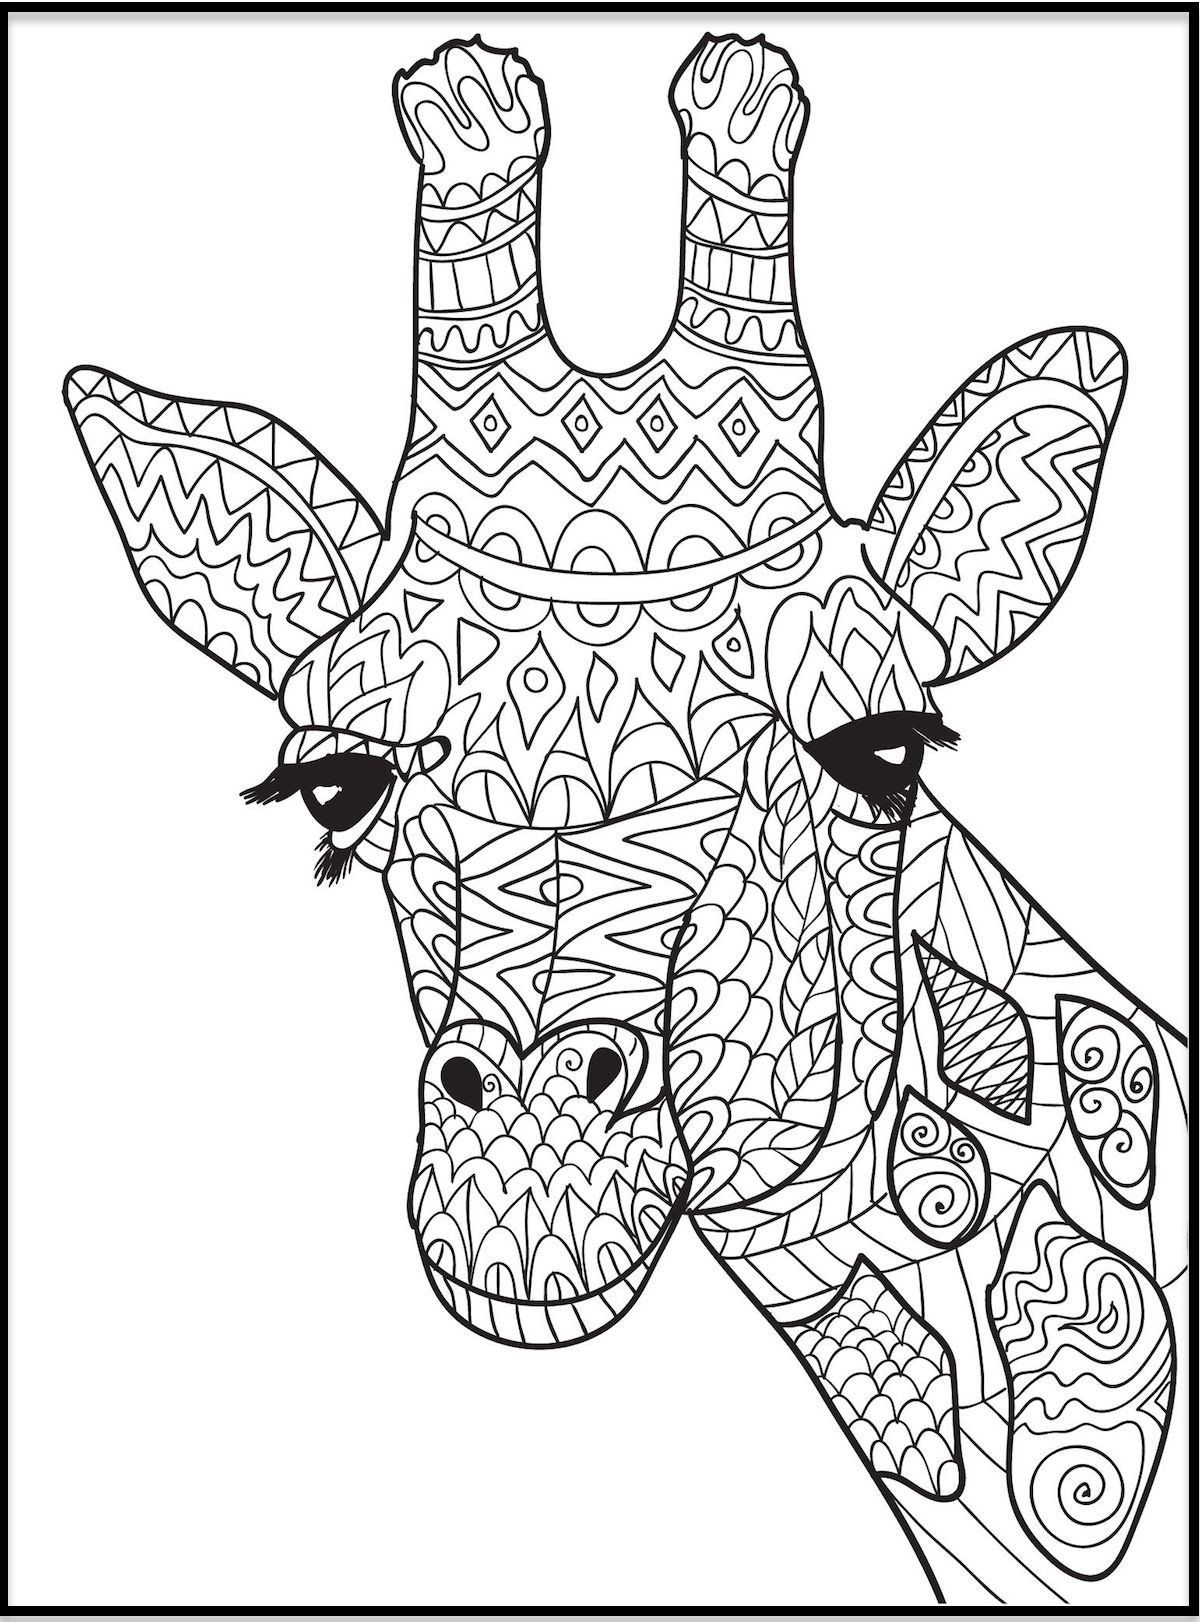 Art Coloring Pages For Kids Coloring Pages Giraffe Clipart Coloring And Other Free Giraffe Coloring Pages Animal Coloring Pages Giraffe Colors